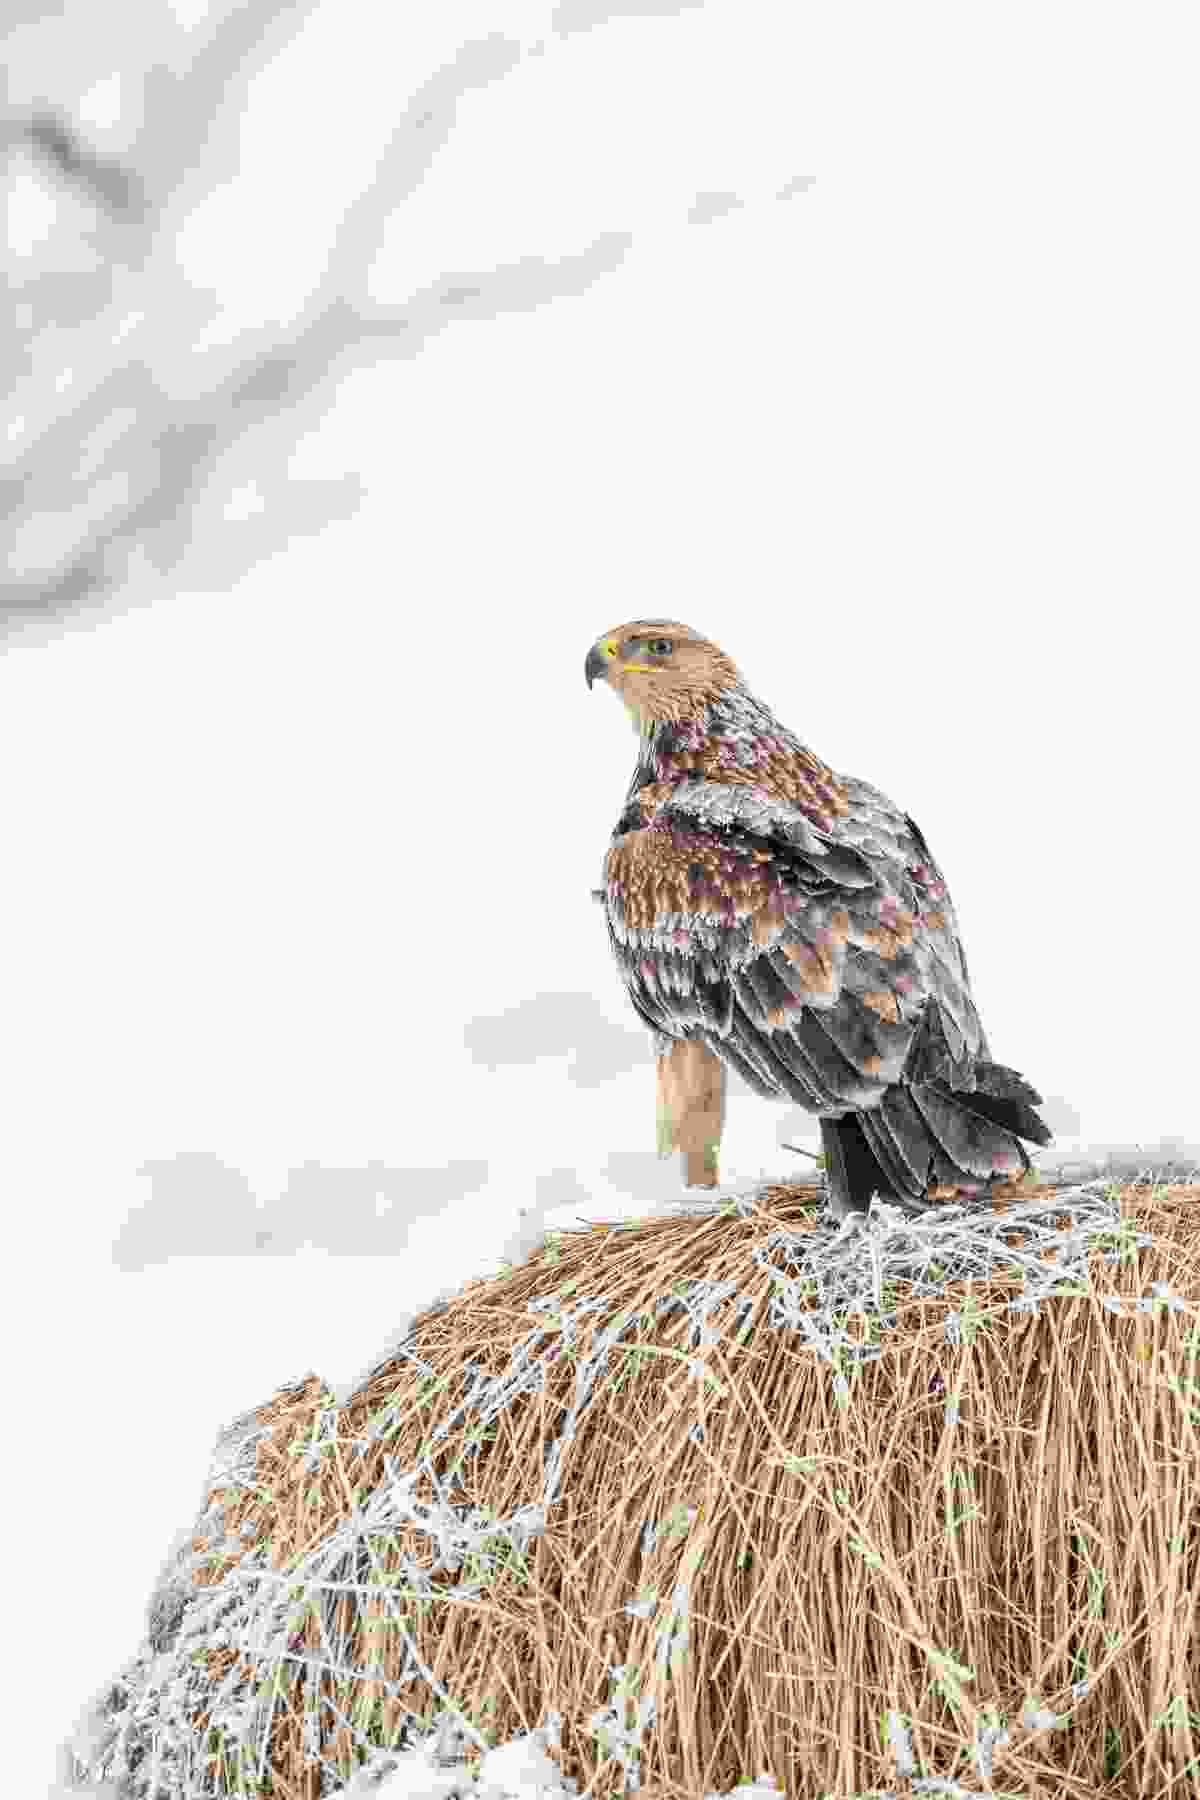 An immature eastern imperial eagle spending winter in the Hungarian lowlands perches on a hay bale (John Gooday/Alamy Stock Photo)